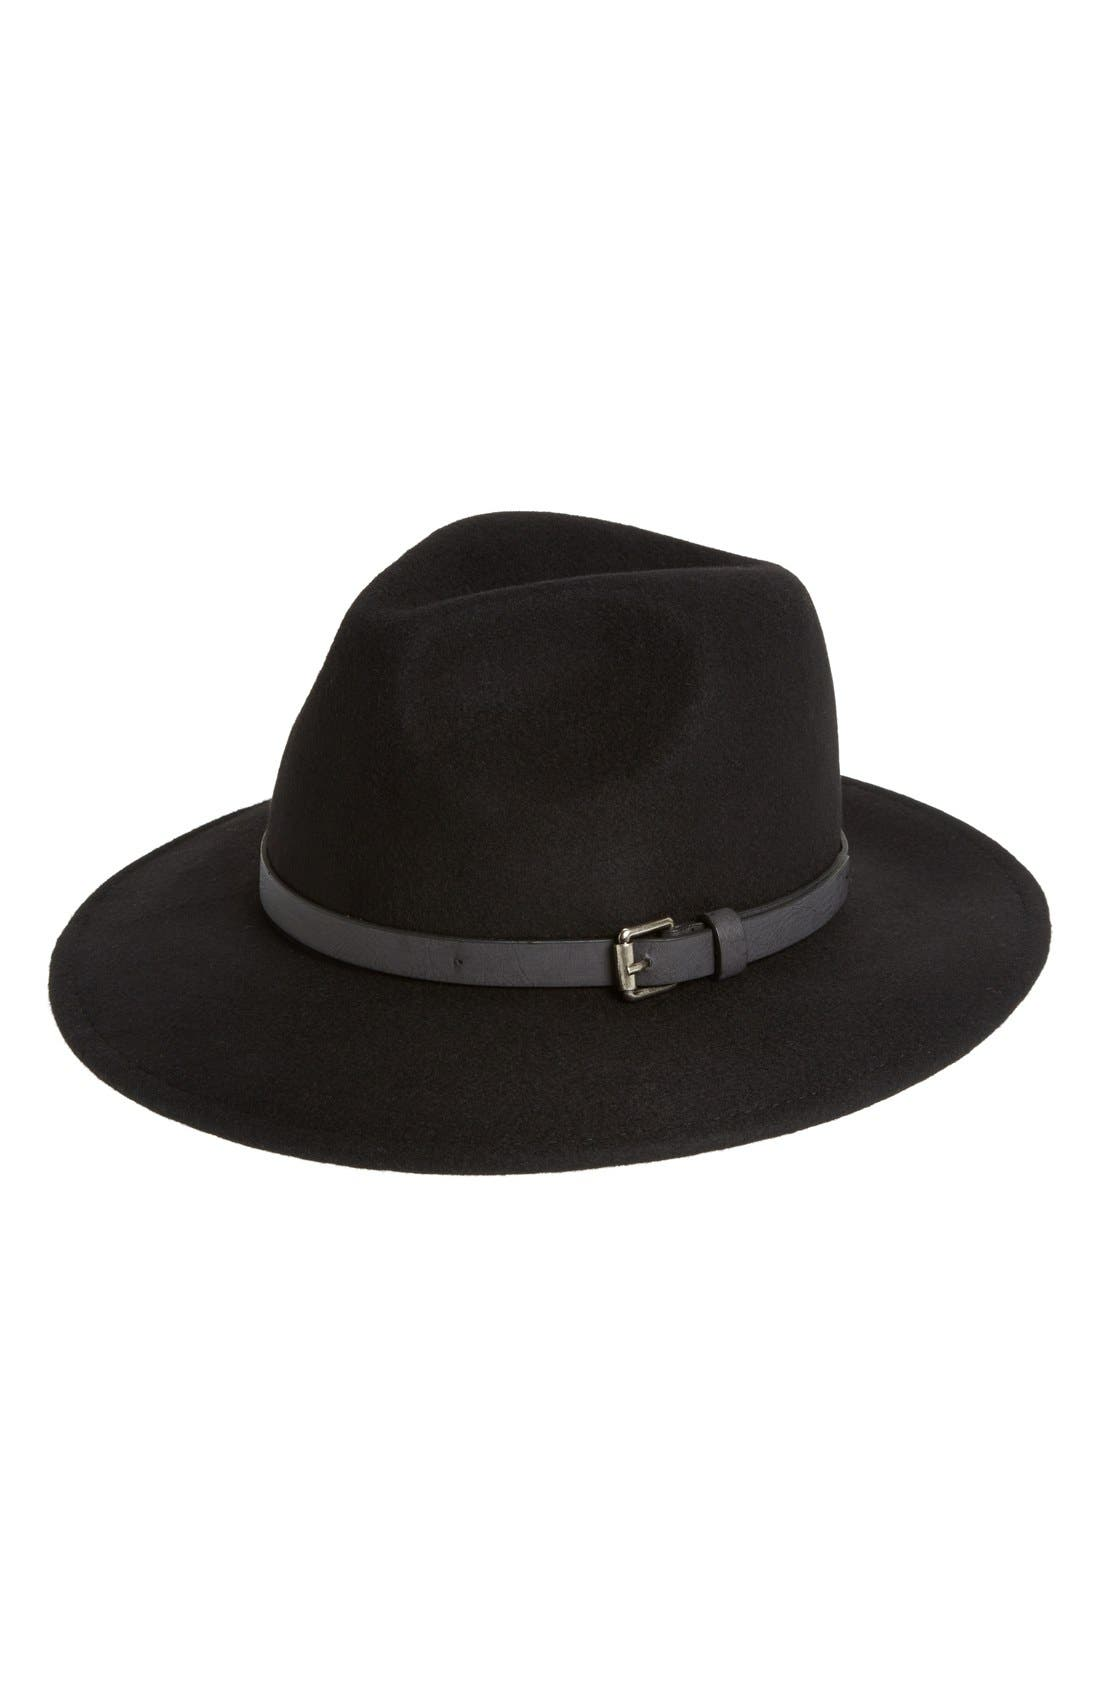 Main Image - Sole Society Wool Panama Hat